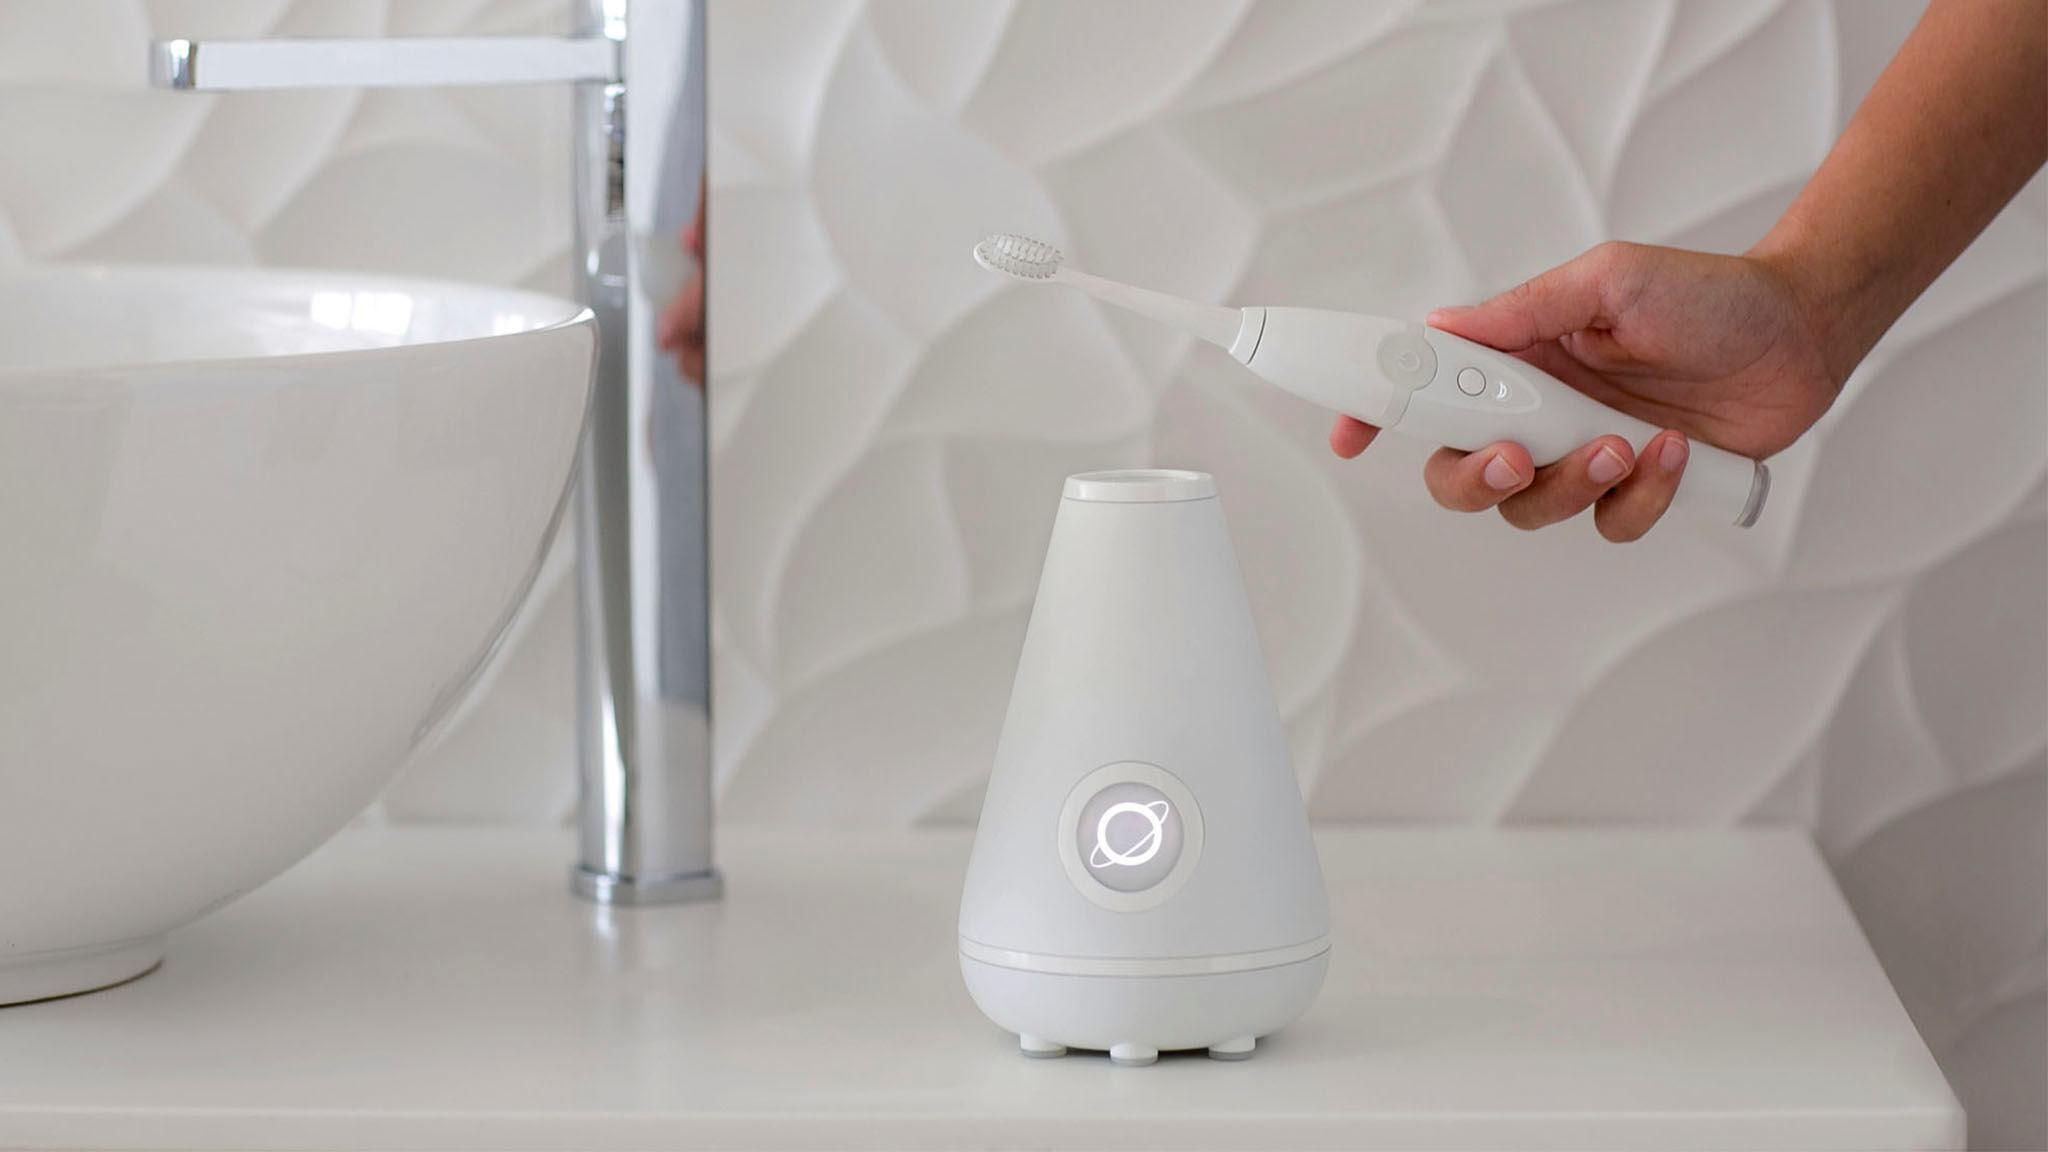 This sleek electronic toothbrush will boost your smile in no time